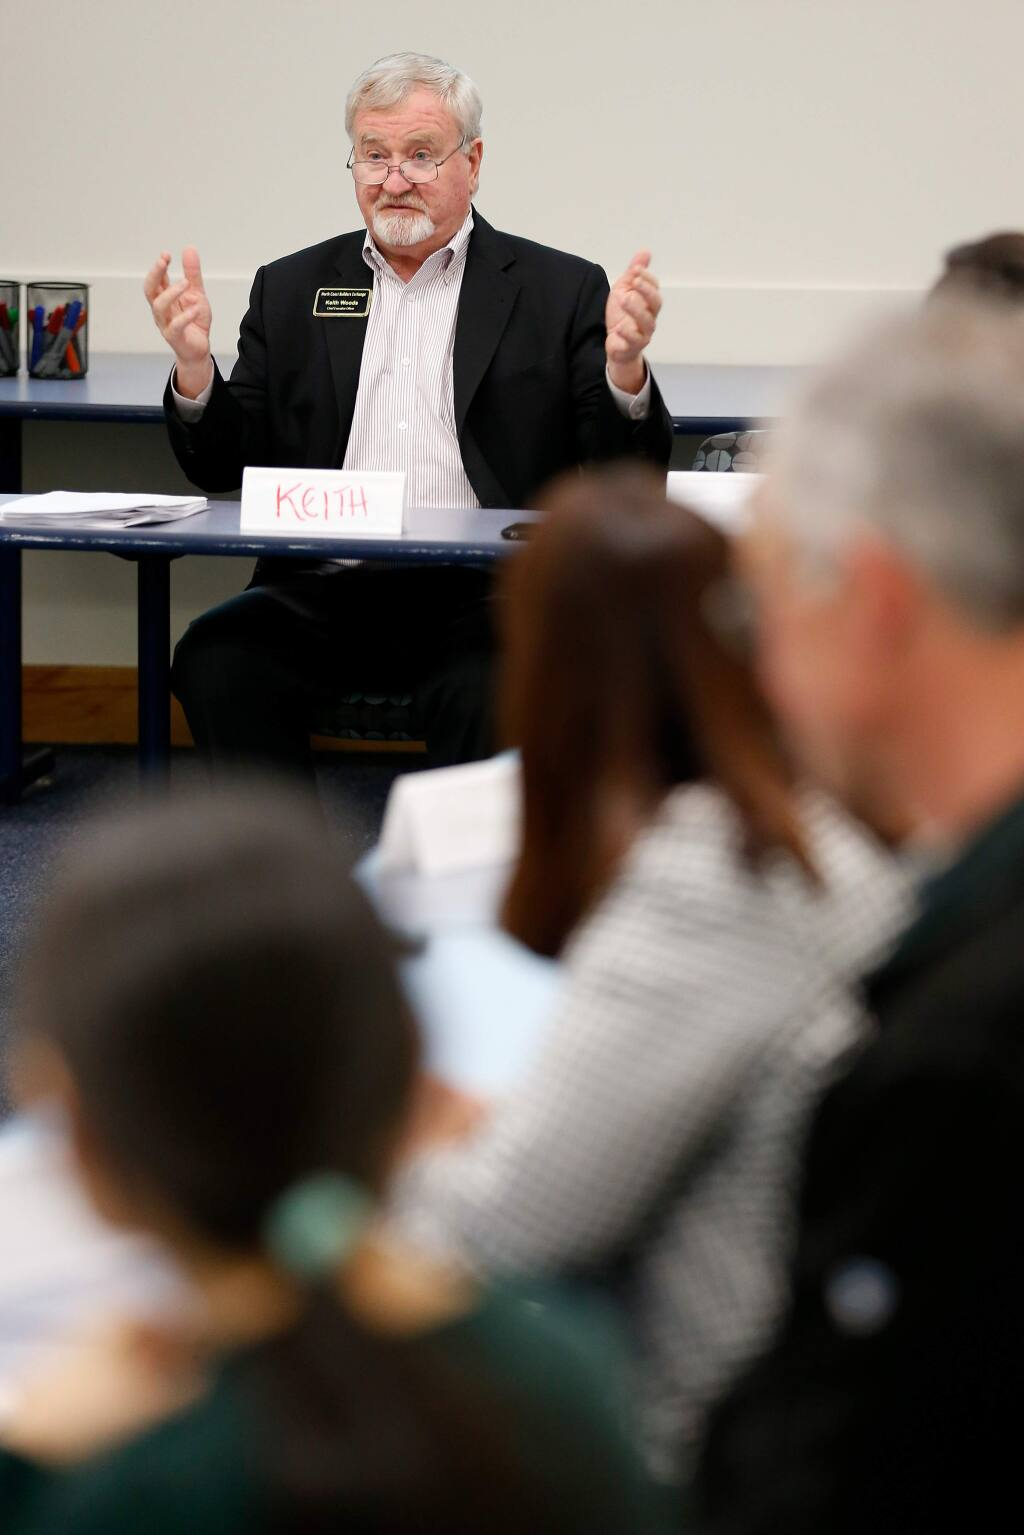 Guest speaker Keith Woods, CEO of North Coast Builders Exchange, gives a presentation during a block captains meeting at the Sonoma County Administration Center in Santa Rosa, California, on Thursday, January 24, 2019. (Alvin Jornada / The Press Democrat)